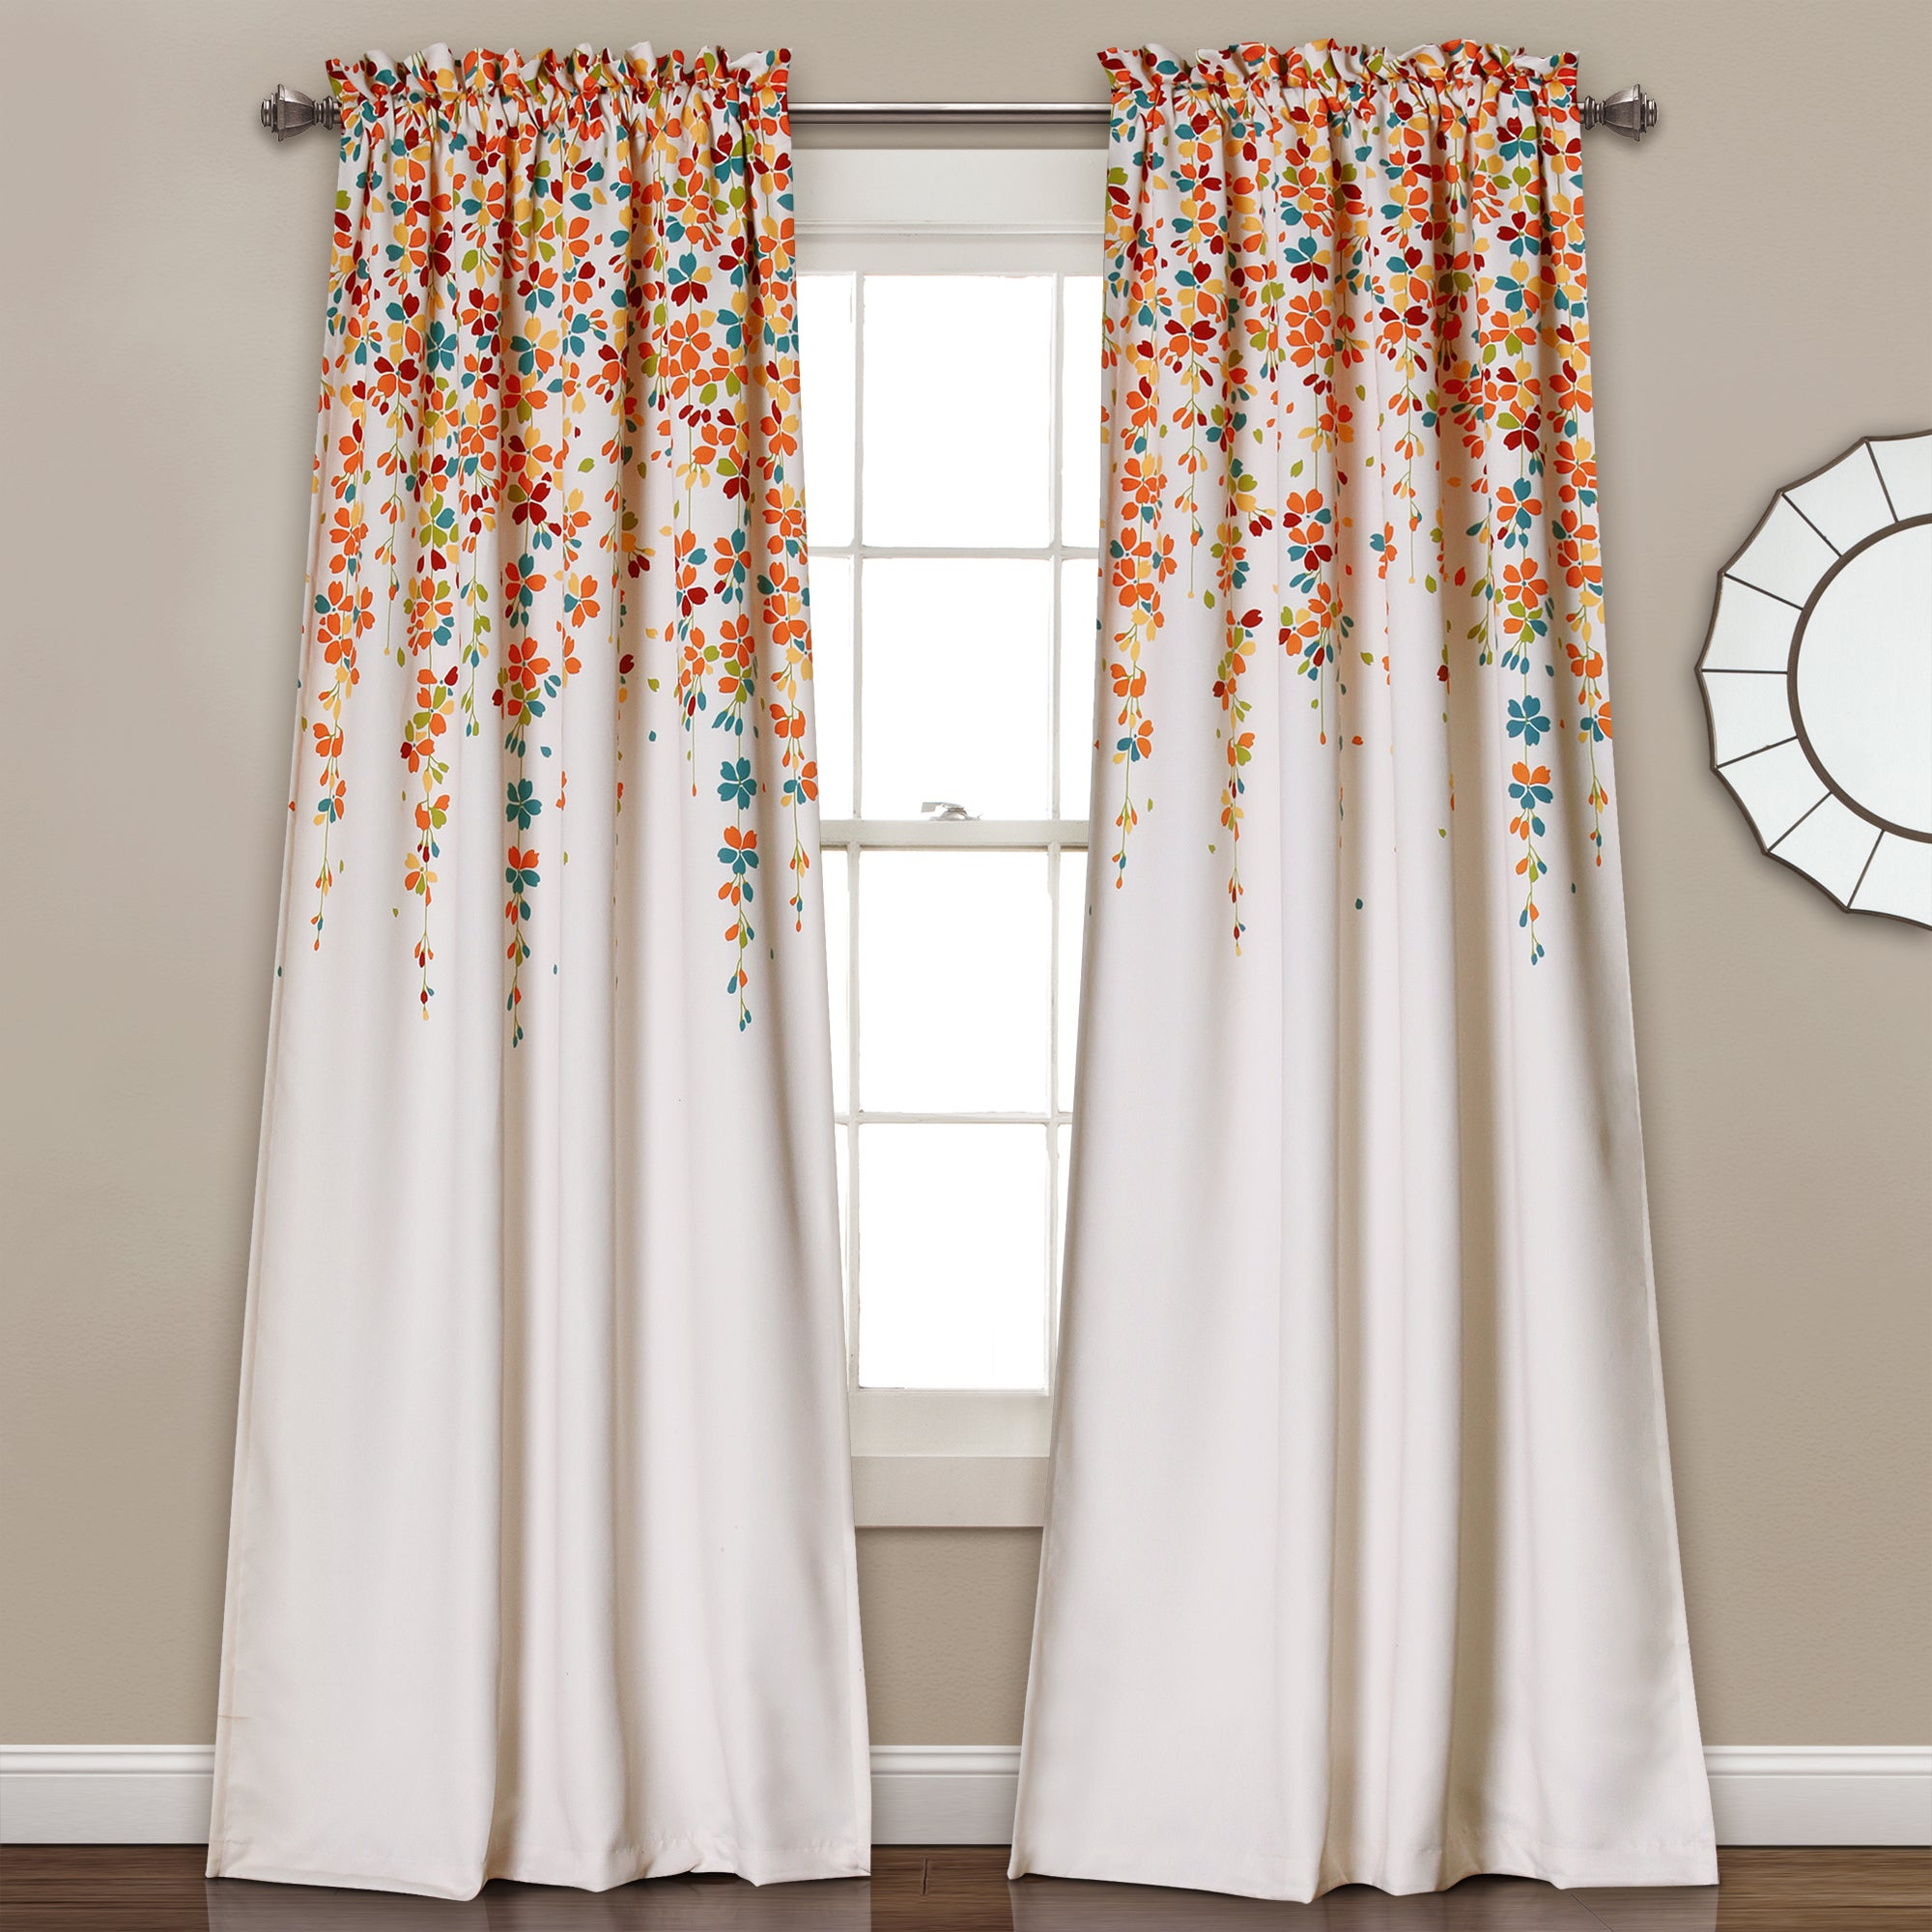 Favorite Lush Decor Weeping Flowers Room Darkening Curtain Panel Pair Regarding Weeping Flowers Room Darkening Curtain Panel Pairs (View 2 of 20)